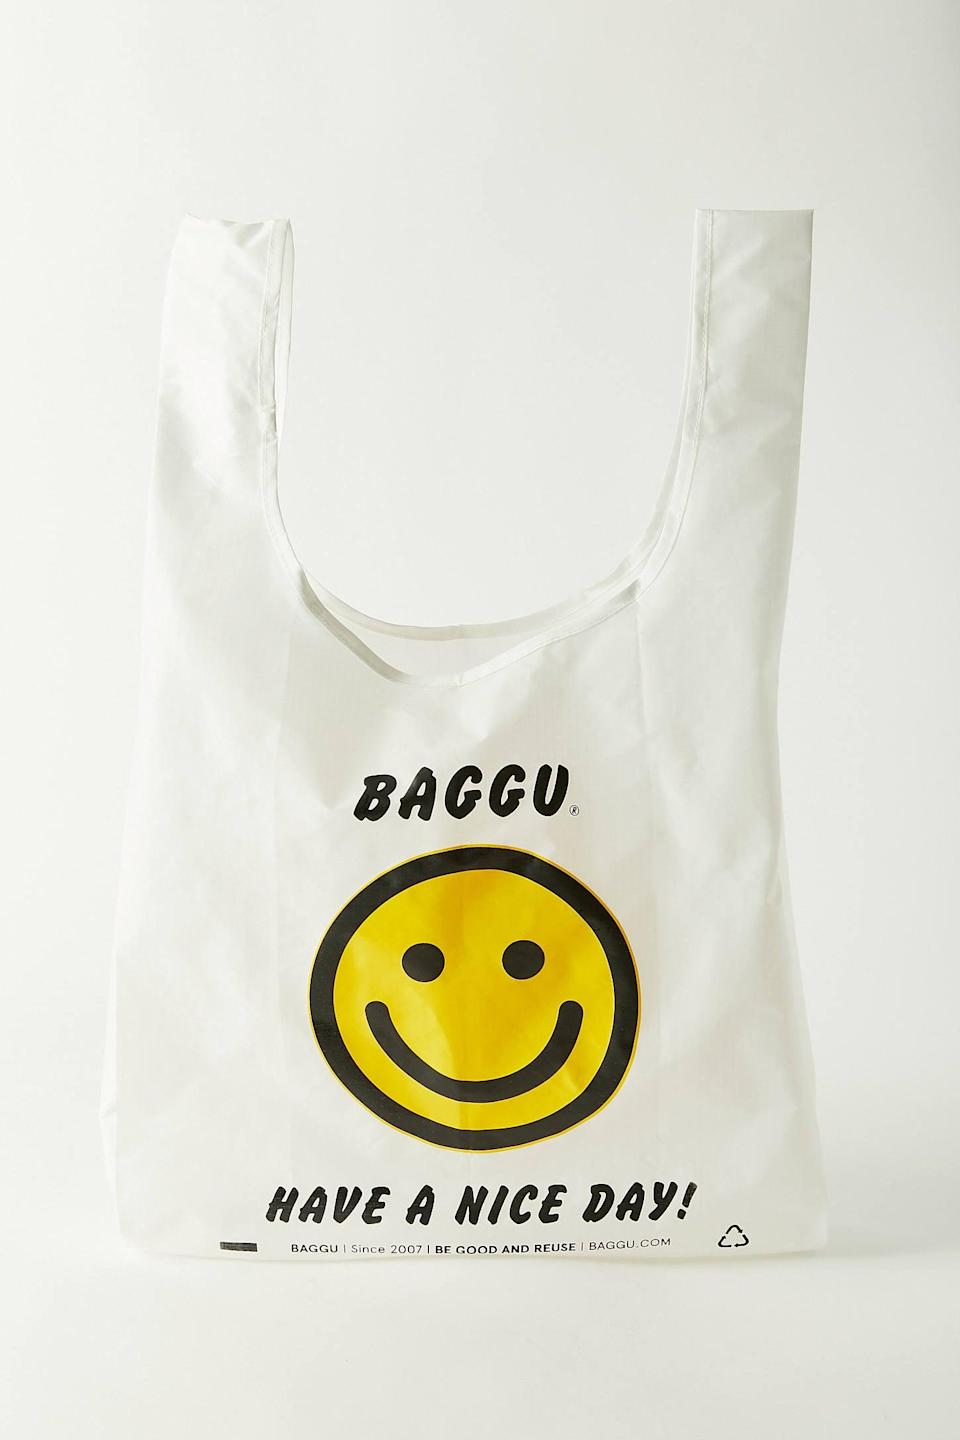 """<h2>Baggu Reusable Tote</h2><br>Baggu bags aren't just cute and cheap, they're a major sustainable staple when it comes to minimizing single-use plastic bags. For just 12 buckeroos, you can score all different styles of patterns, colors, and designs galore – and use them to tote everything from groceries to lunch to night-out-on-the-town accessories. <br><br><em>Shop</em><strong><em> <a href=""""https://baggu.com/collections/reusable-bags"""" rel=""""nofollow noopener"""" target=""""_blank"""" data-ylk=""""slk:Baggu"""" class=""""link rapid-noclick-resp"""">Baggu</a> </em></strong><br><br><br><strong>Baggu</strong> Standard Reusable Tote Bag, $, available at <a href=""""https://go.skimresources.com/?id=30283X879131&url=https%3A%2F%2Fwww.urbanoutfitters.com%2Fshop%2Fbaggu-standard-reusable-tote-bag"""" rel=""""nofollow noopener"""" target=""""_blank"""" data-ylk=""""slk:Urban Outfitters"""" class=""""link rapid-noclick-resp"""">Urban Outfitters</a>"""